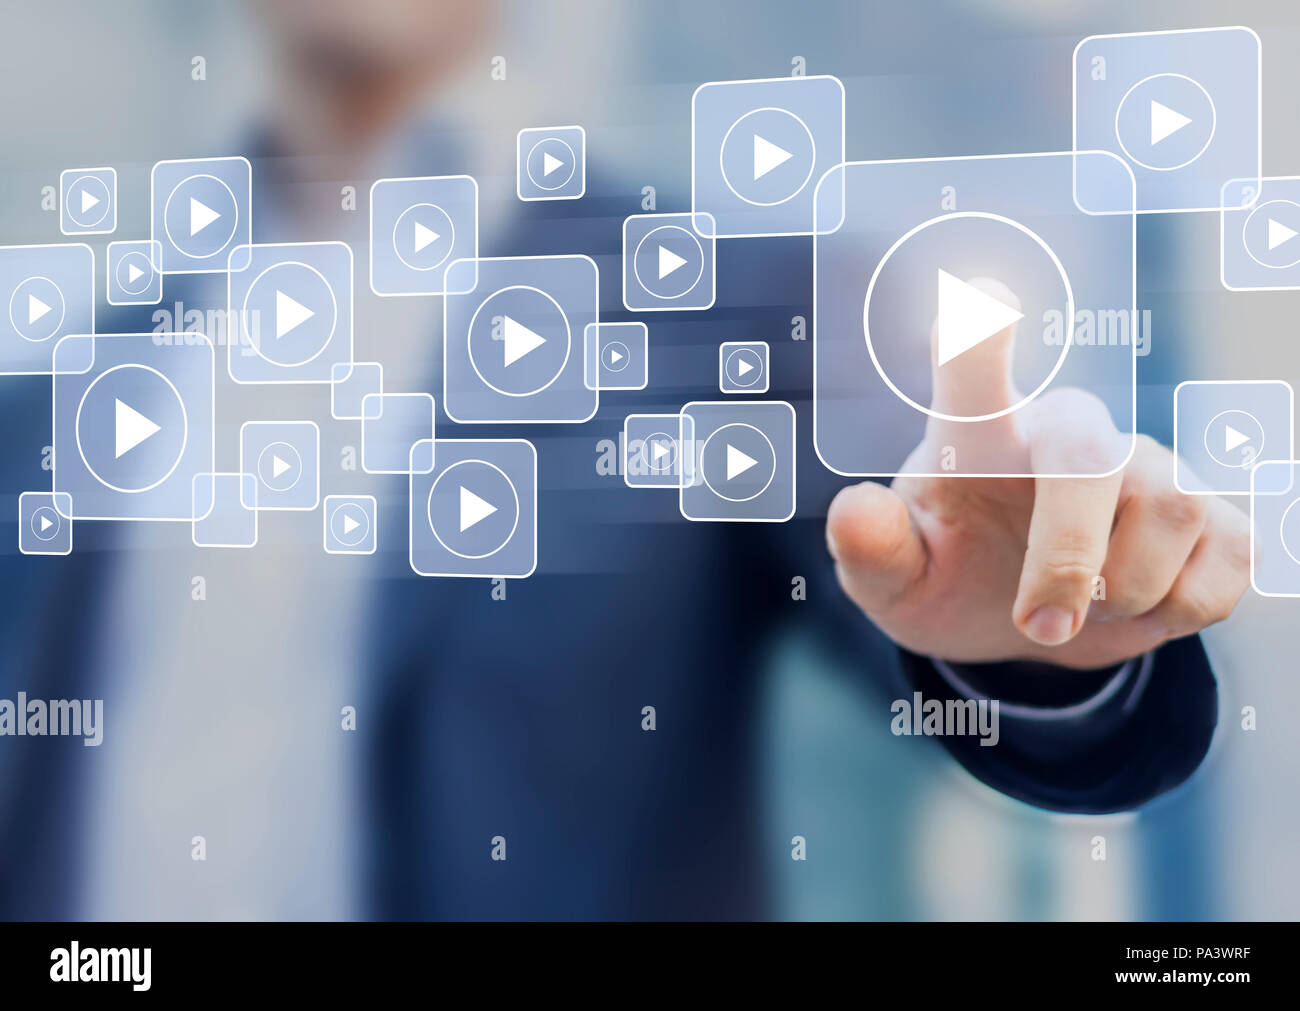 Video on demand technology with person touching play button